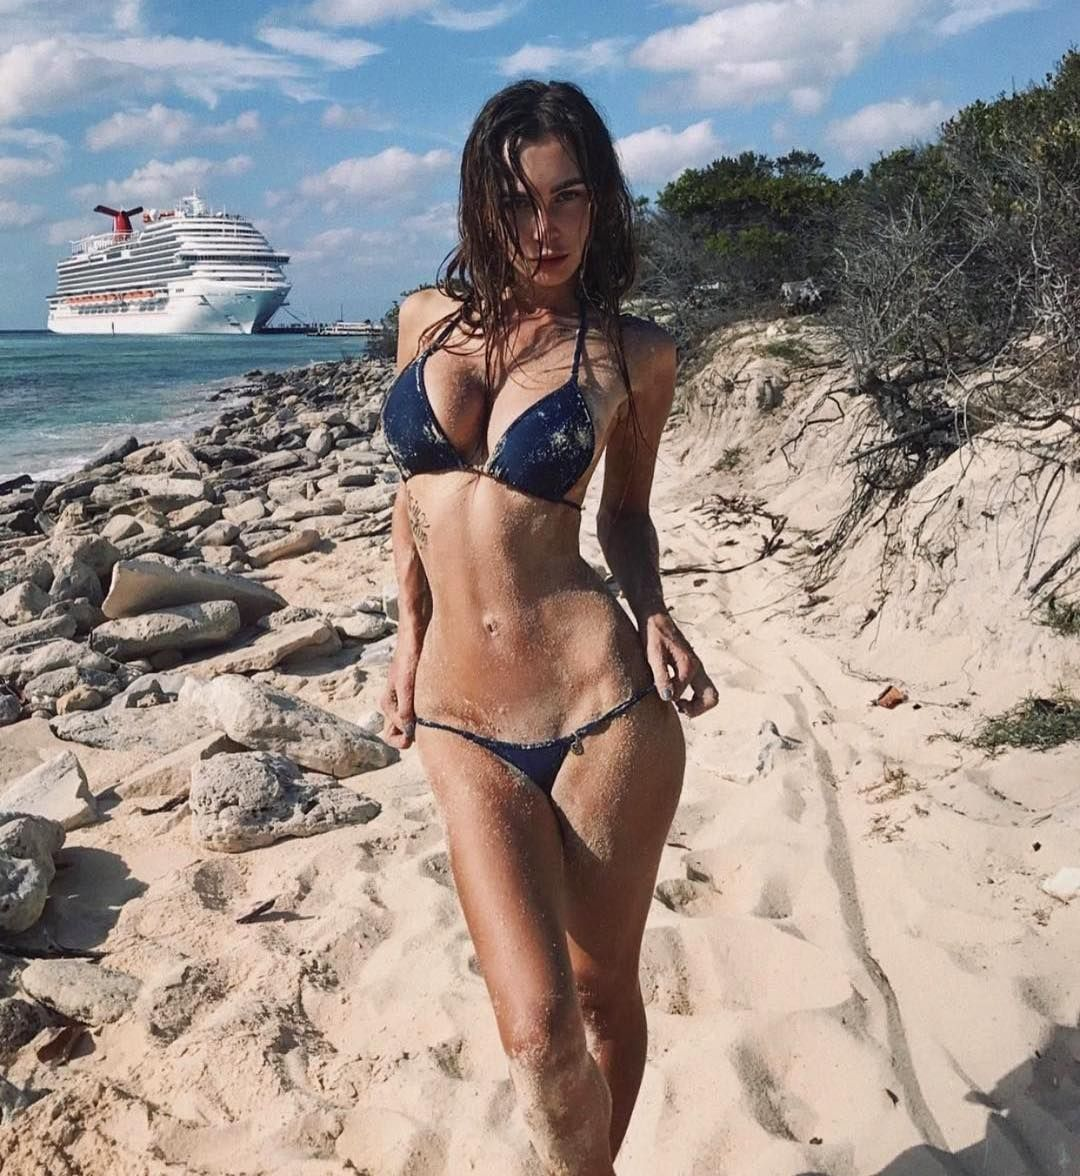 Young Lily Ermak nudes (14 photos), Topless, Hot, Selfie, swimsuit 2020